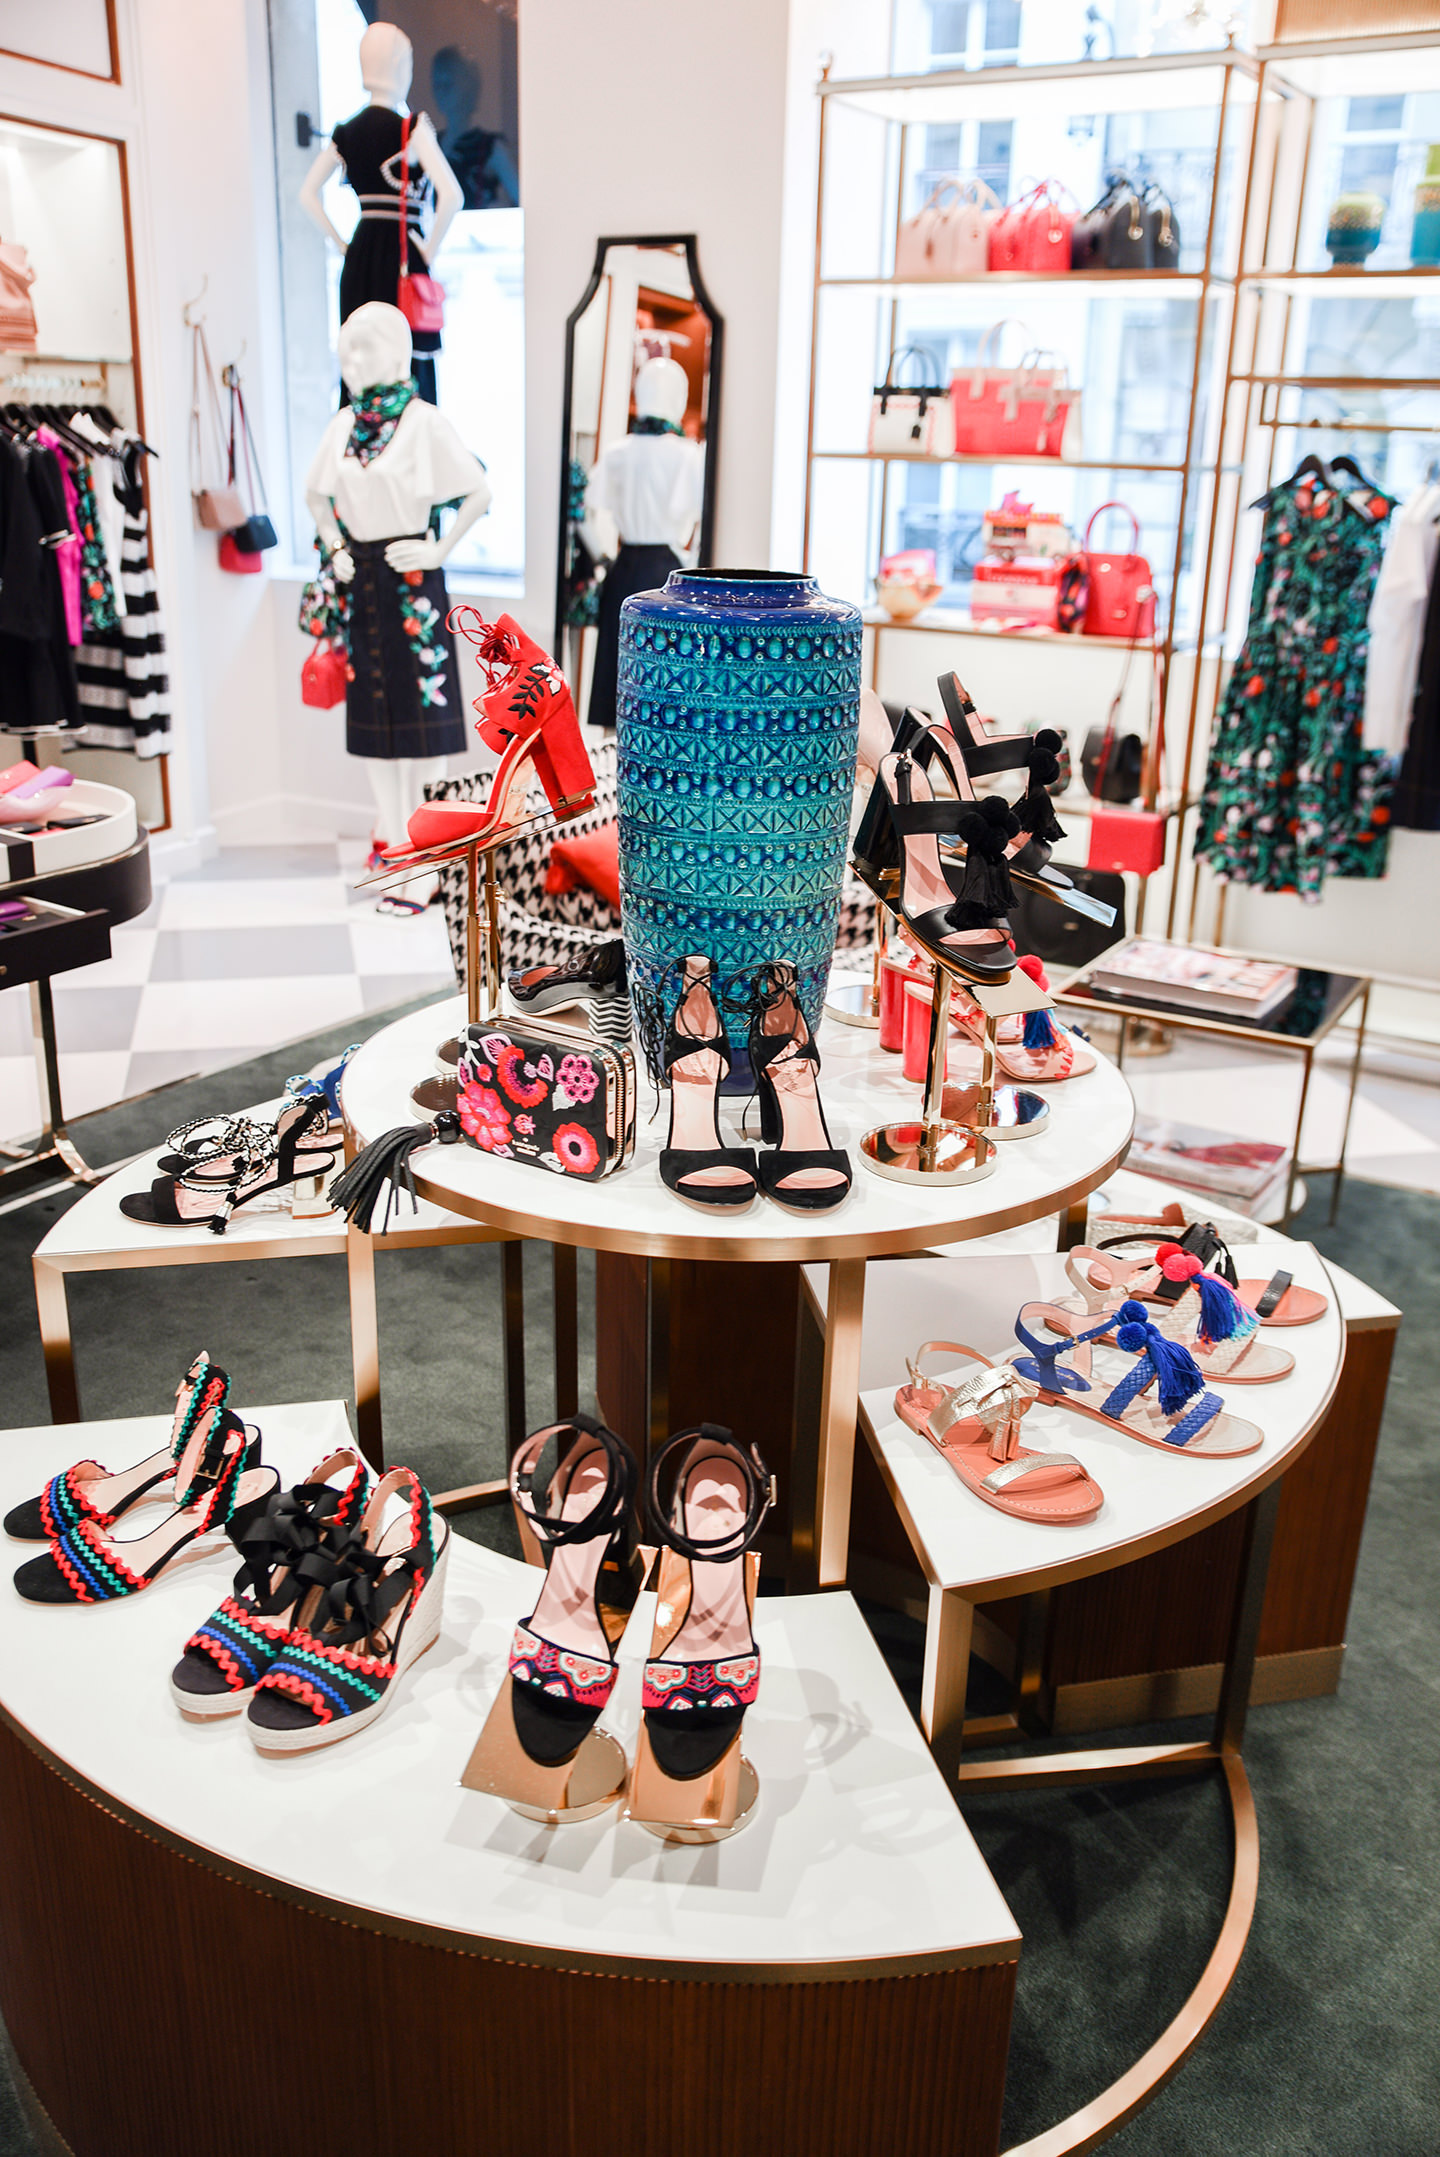 Blog-Mode-And-The-City-Lifestyle-Kate-Spade-Paris-418-rue-saint-honore-6